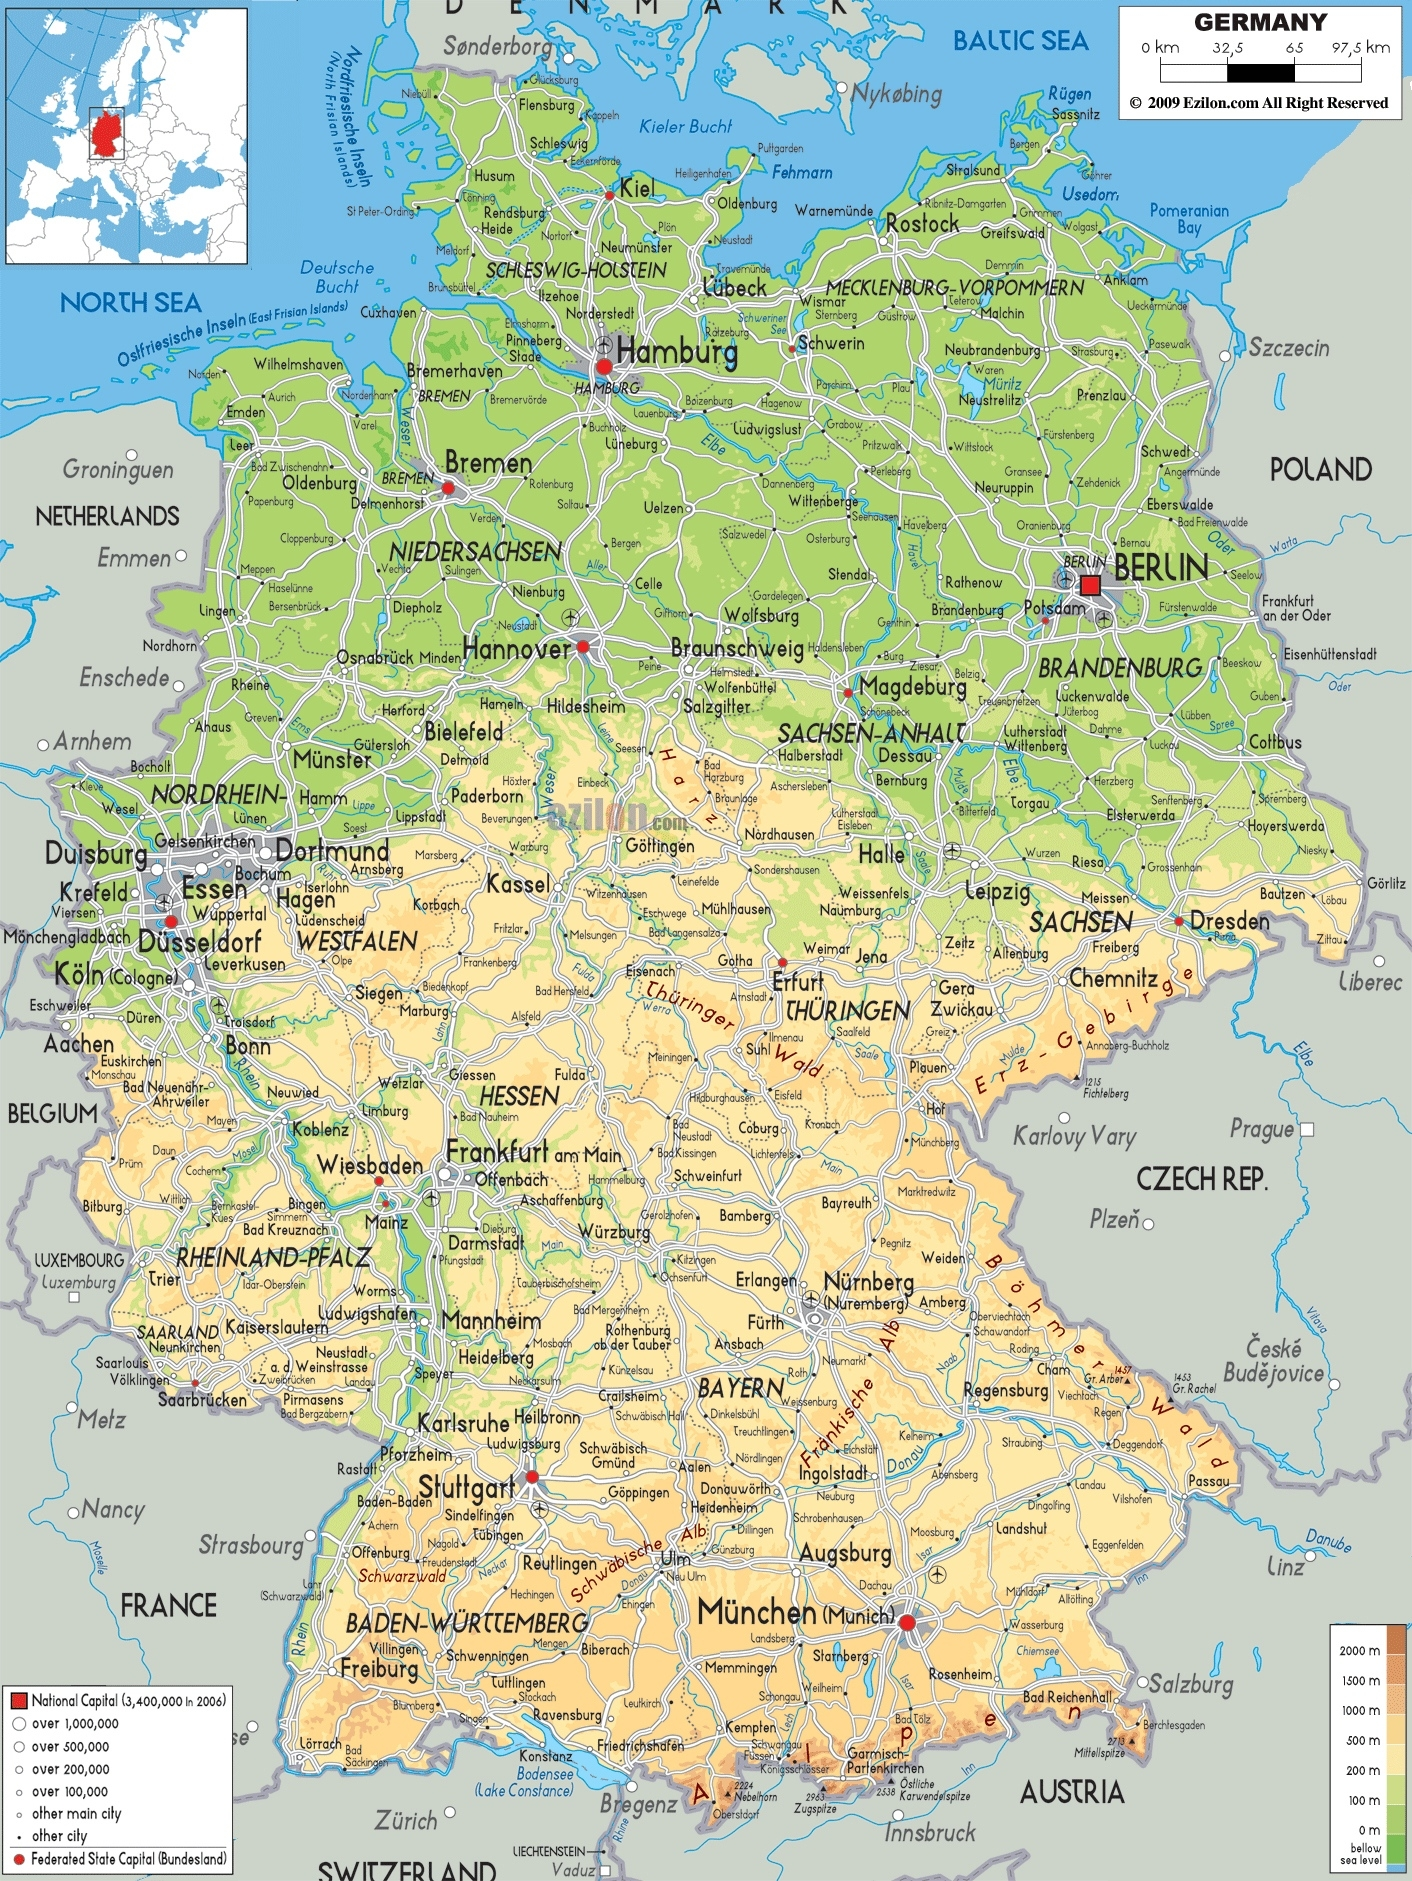 Large Detailed Physical Map Of Germany With All Cities, Roads And within Germany Map With All Cities